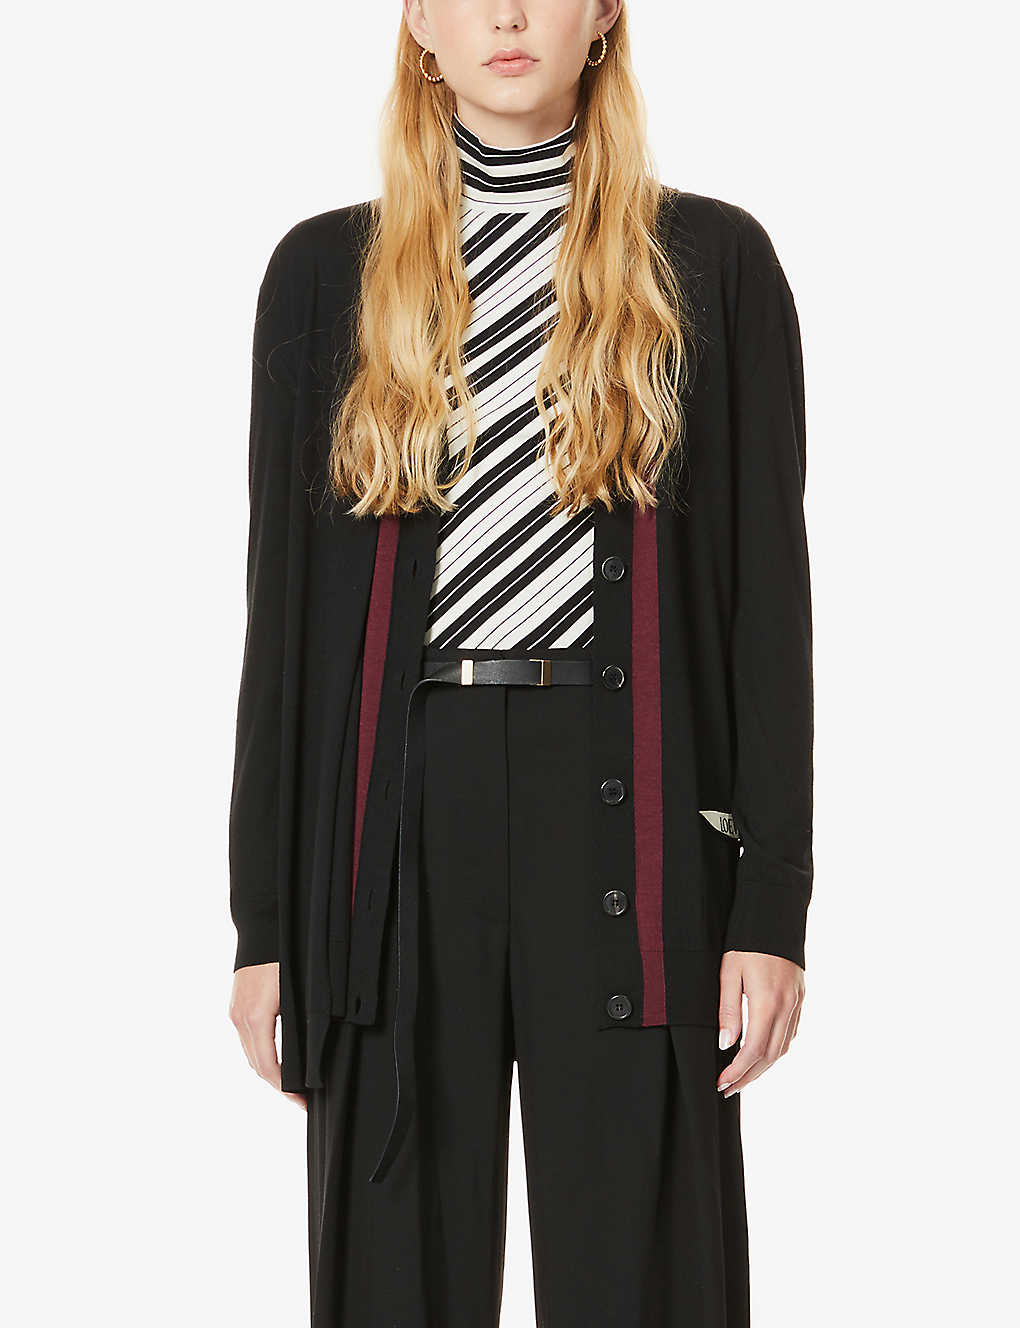 LOEWE: Brand-embroidered wool cardigan